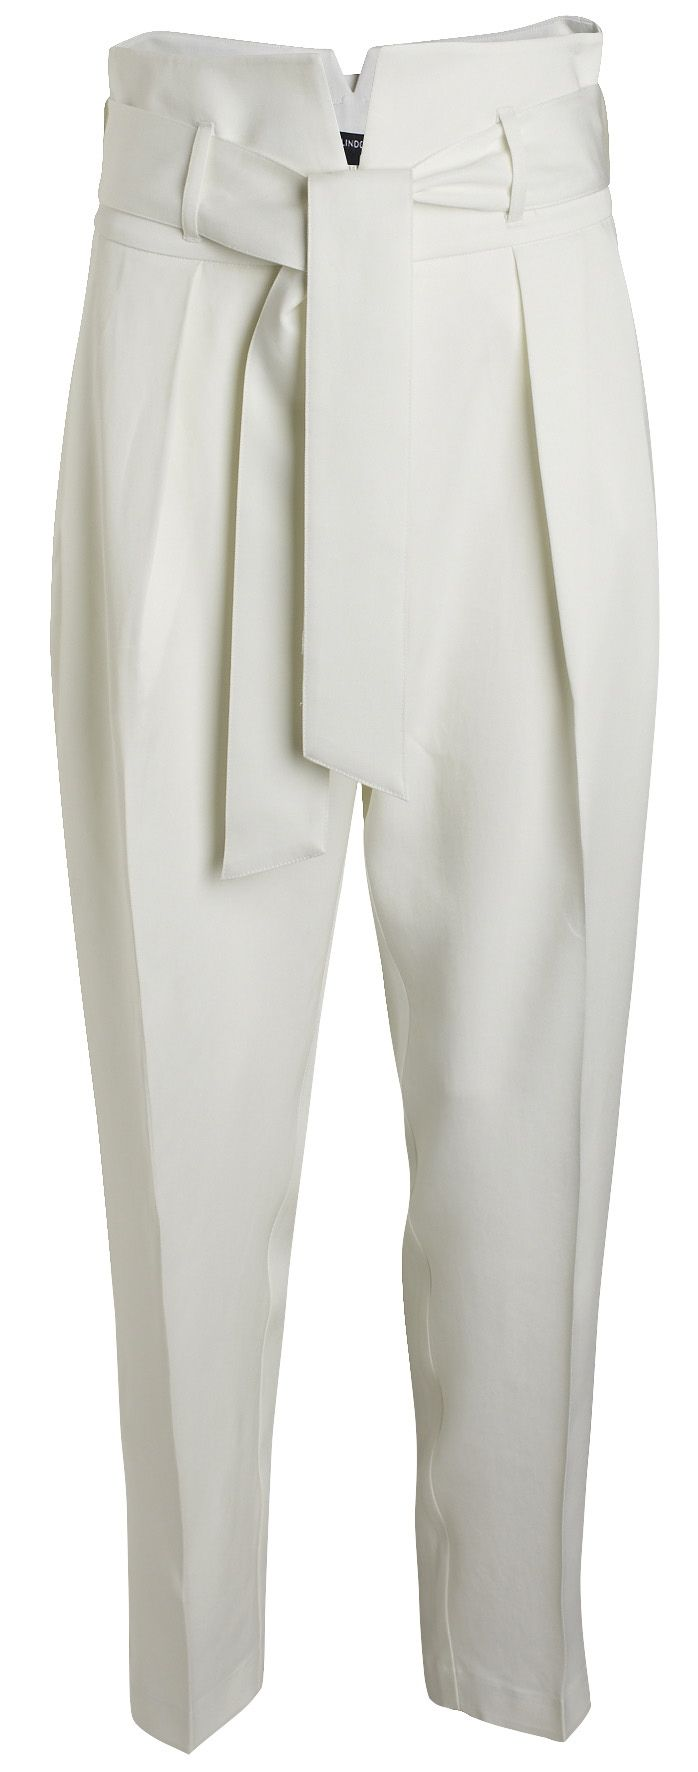 Trousers, White, Trousers, Women   Lindex